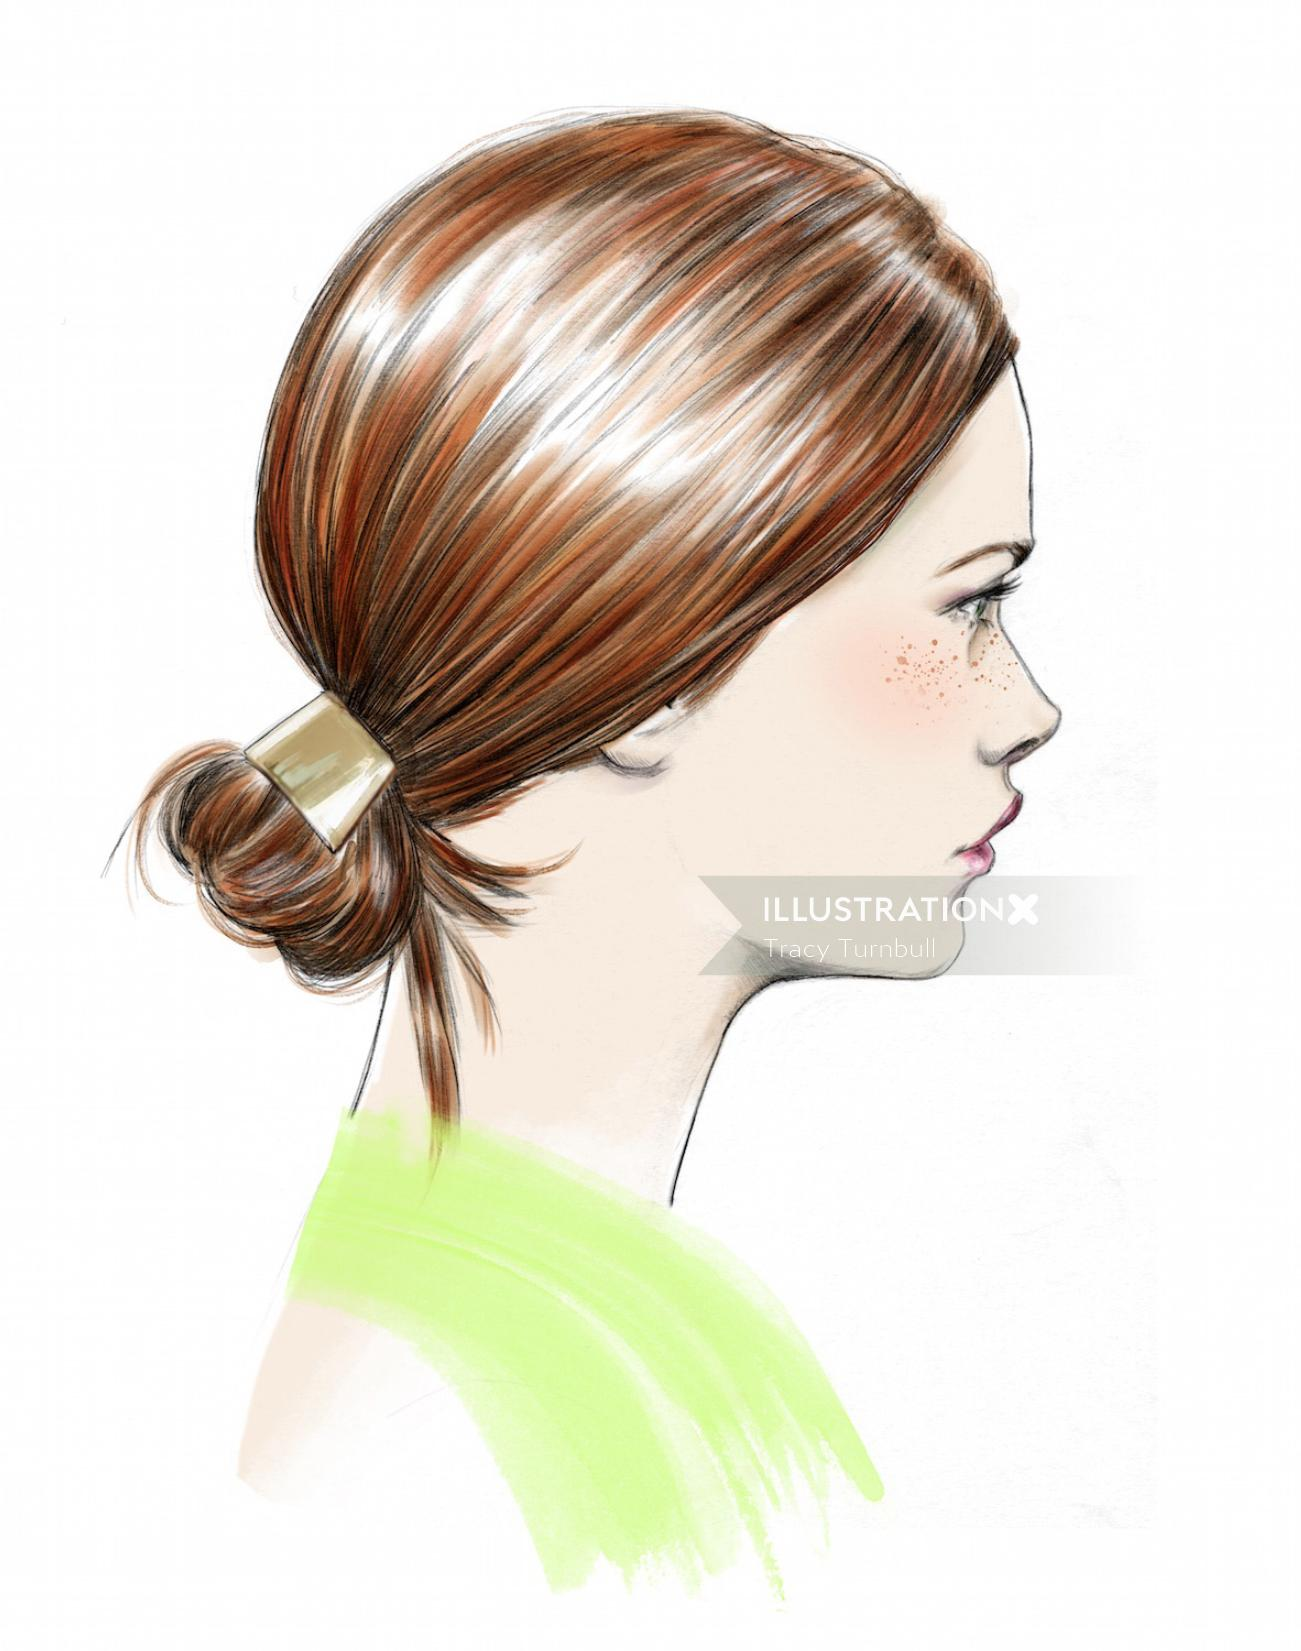 illustration of Girl's face with hair tied